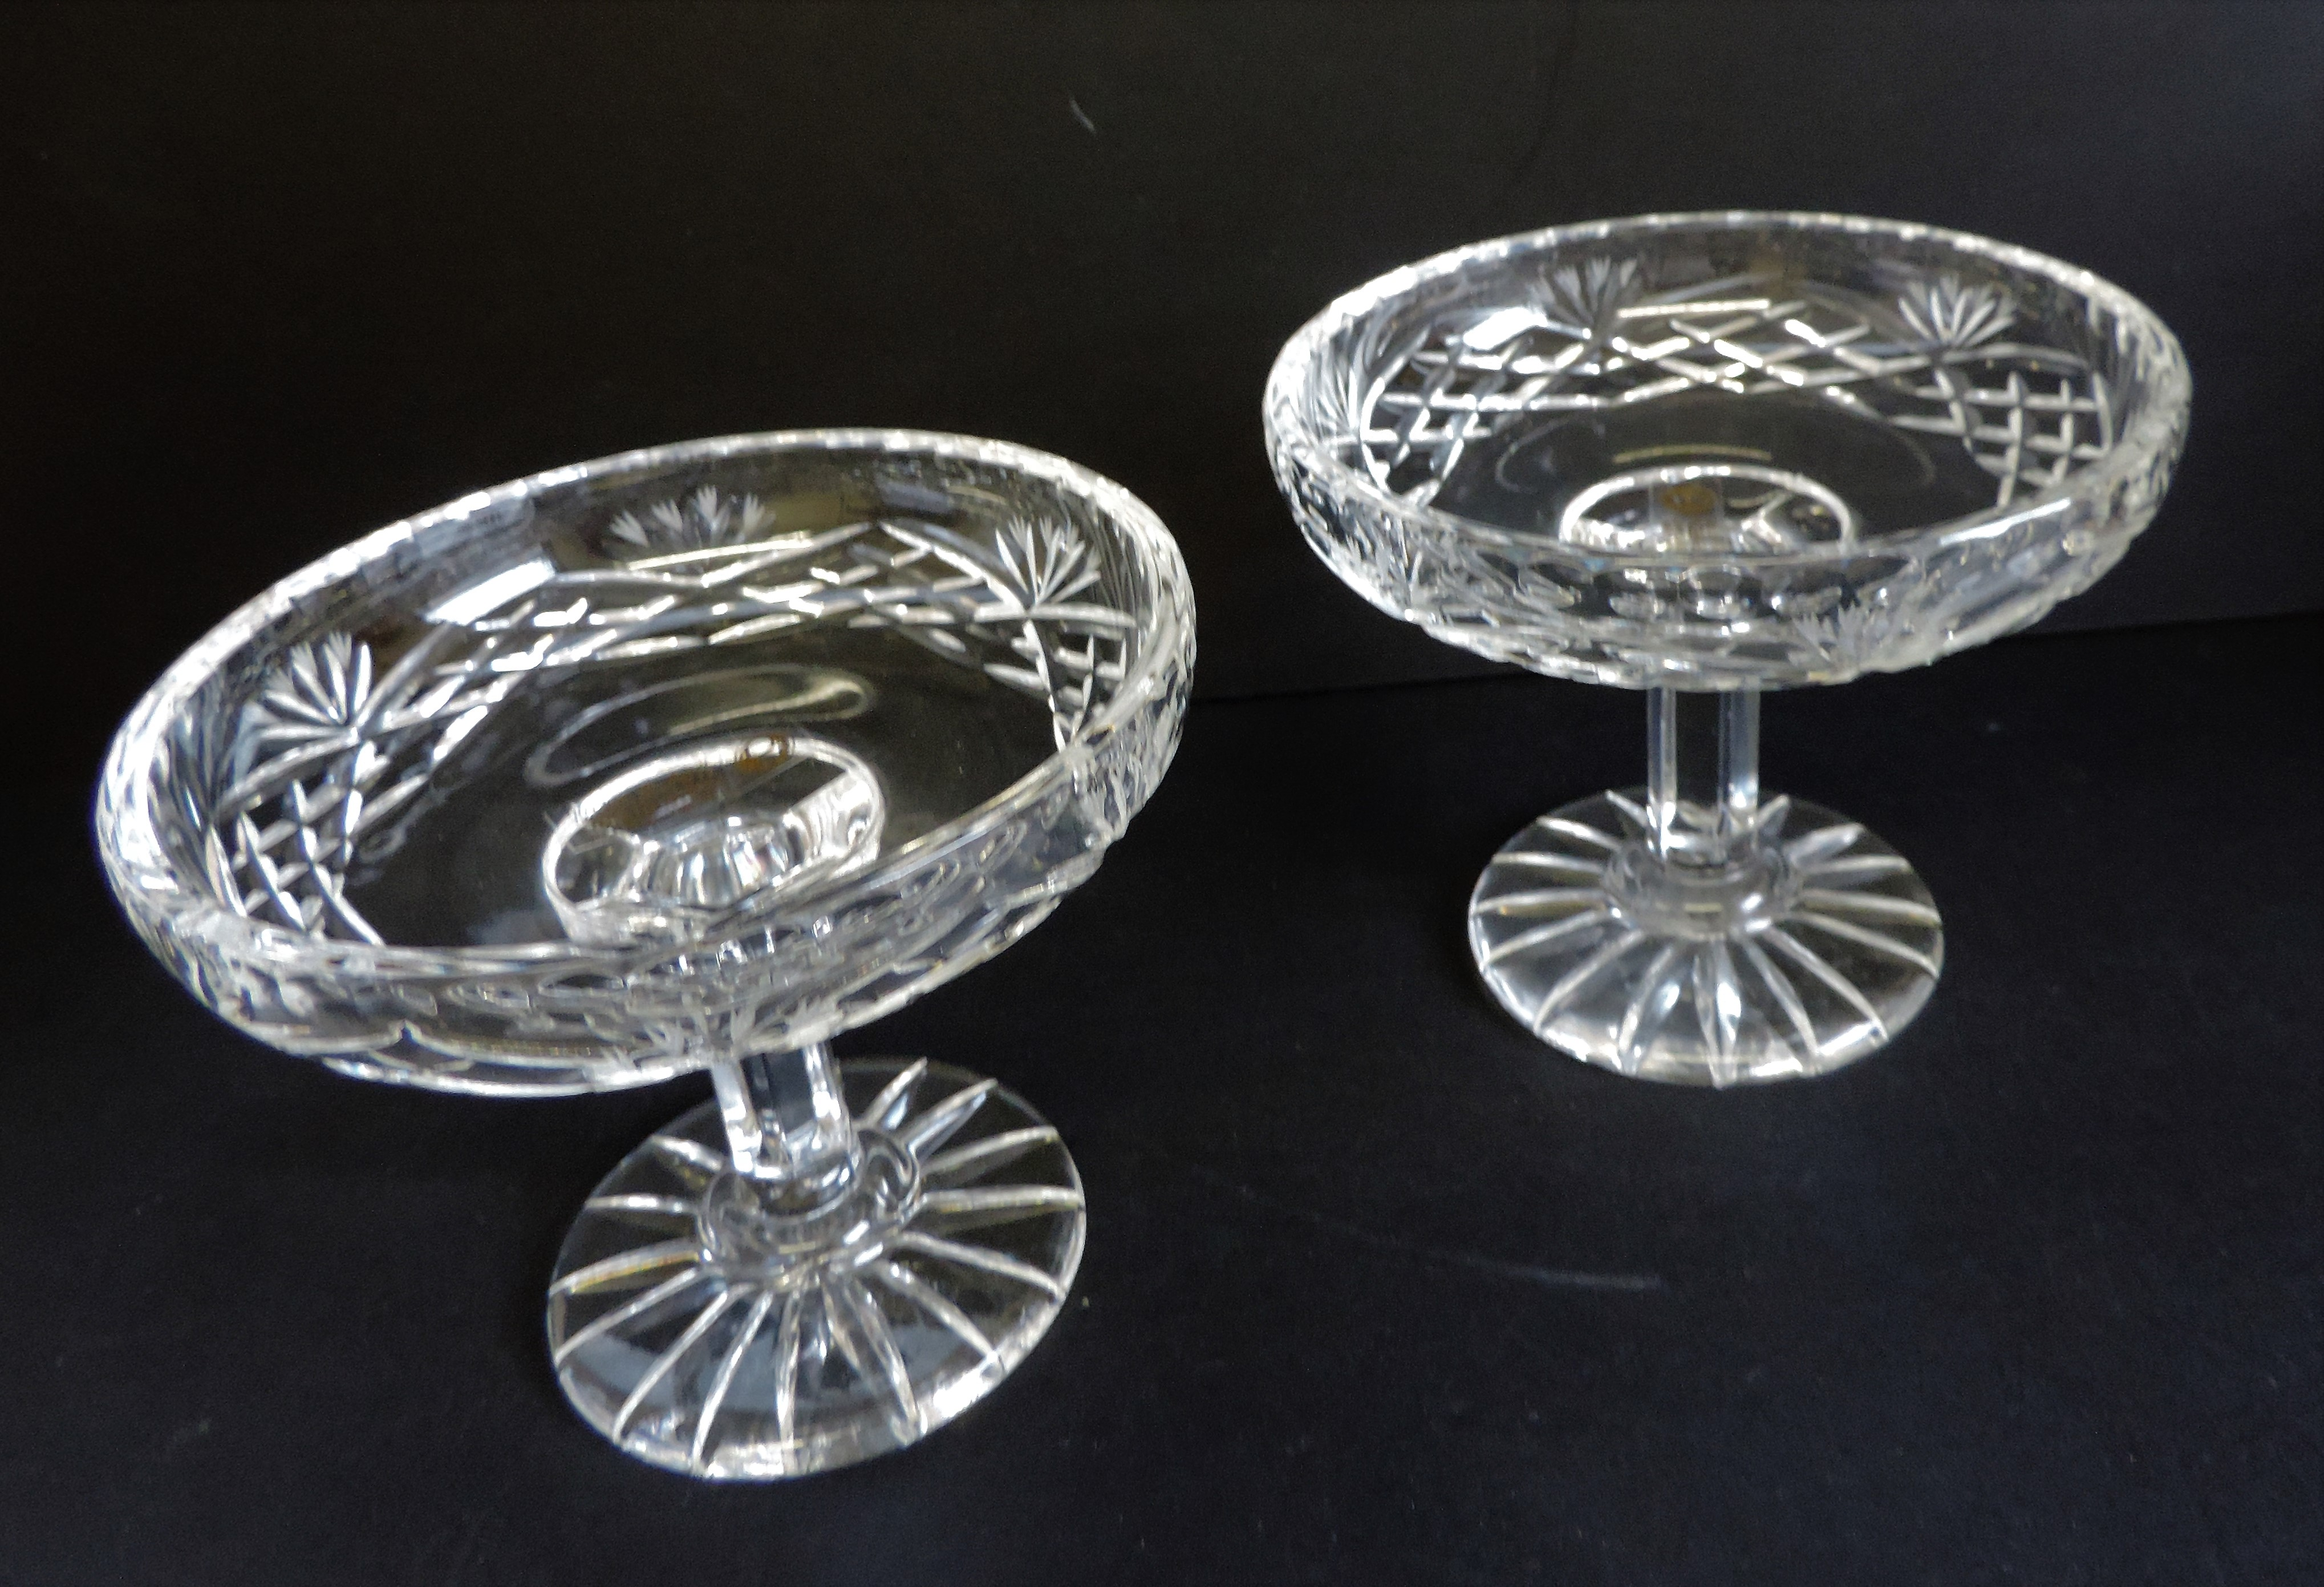 Pair of Hand Cut Crystal Dishes by Zawercie of Poland - Image 2 of 5